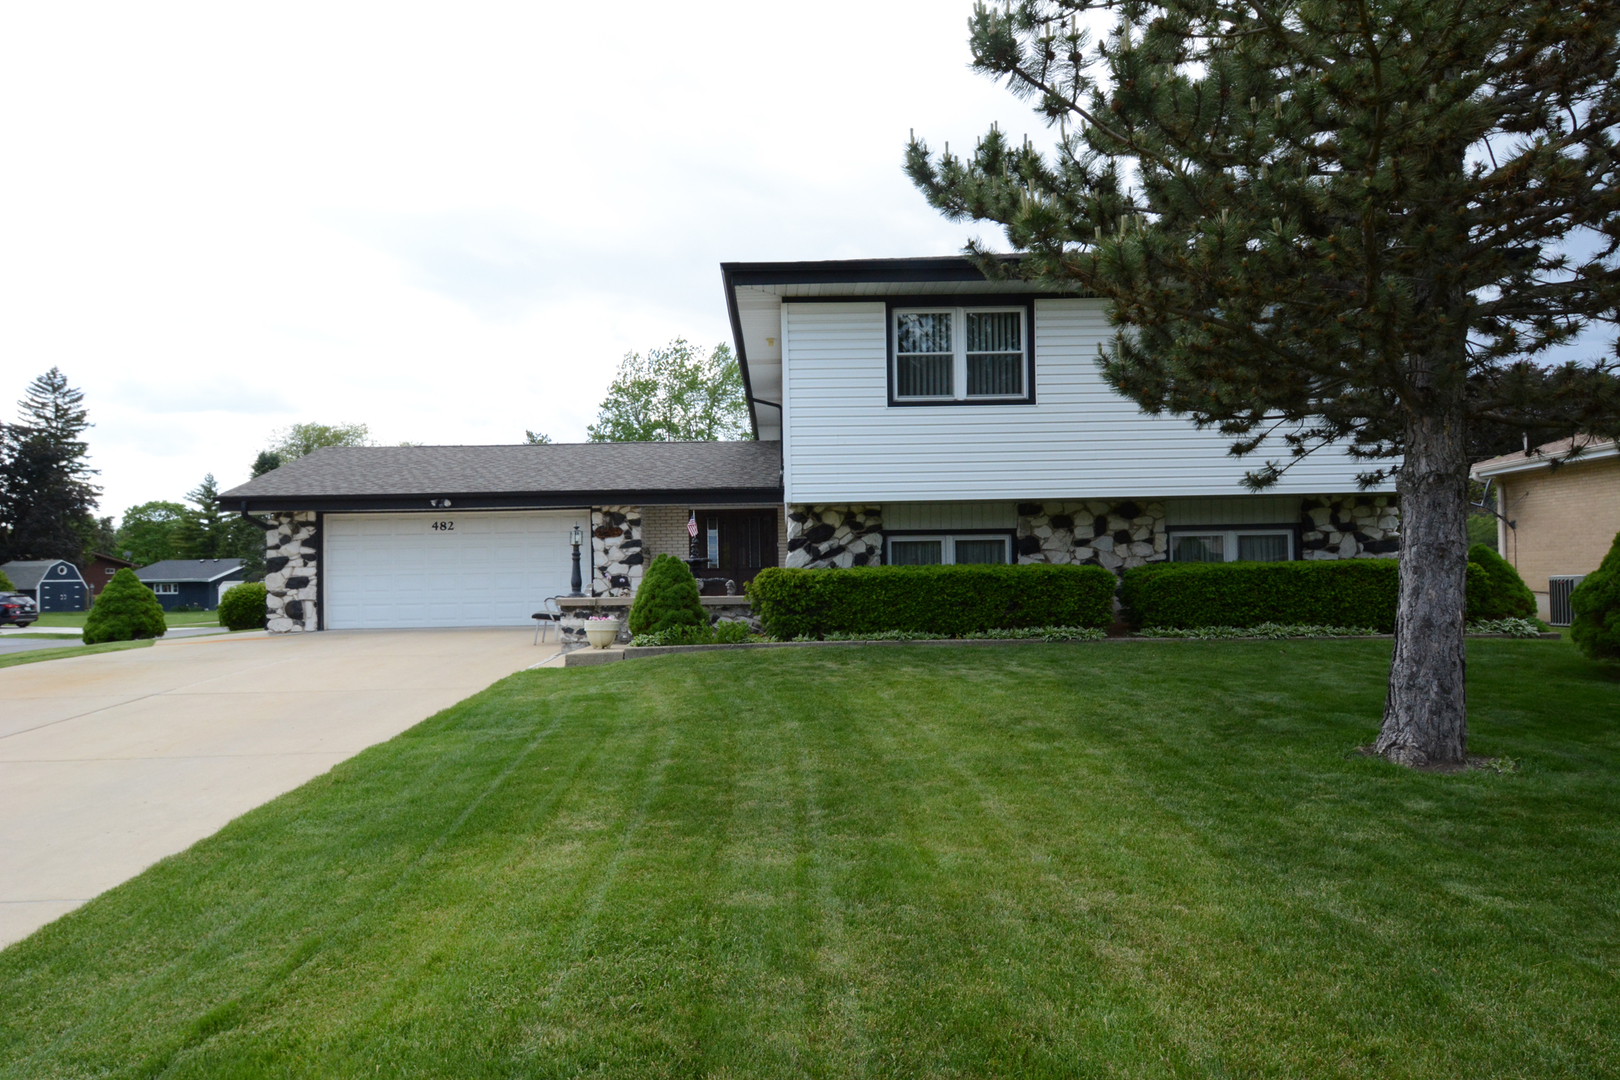 482 Glendale Road, Roselle in Du Page County, IL 60172 Home for Sale